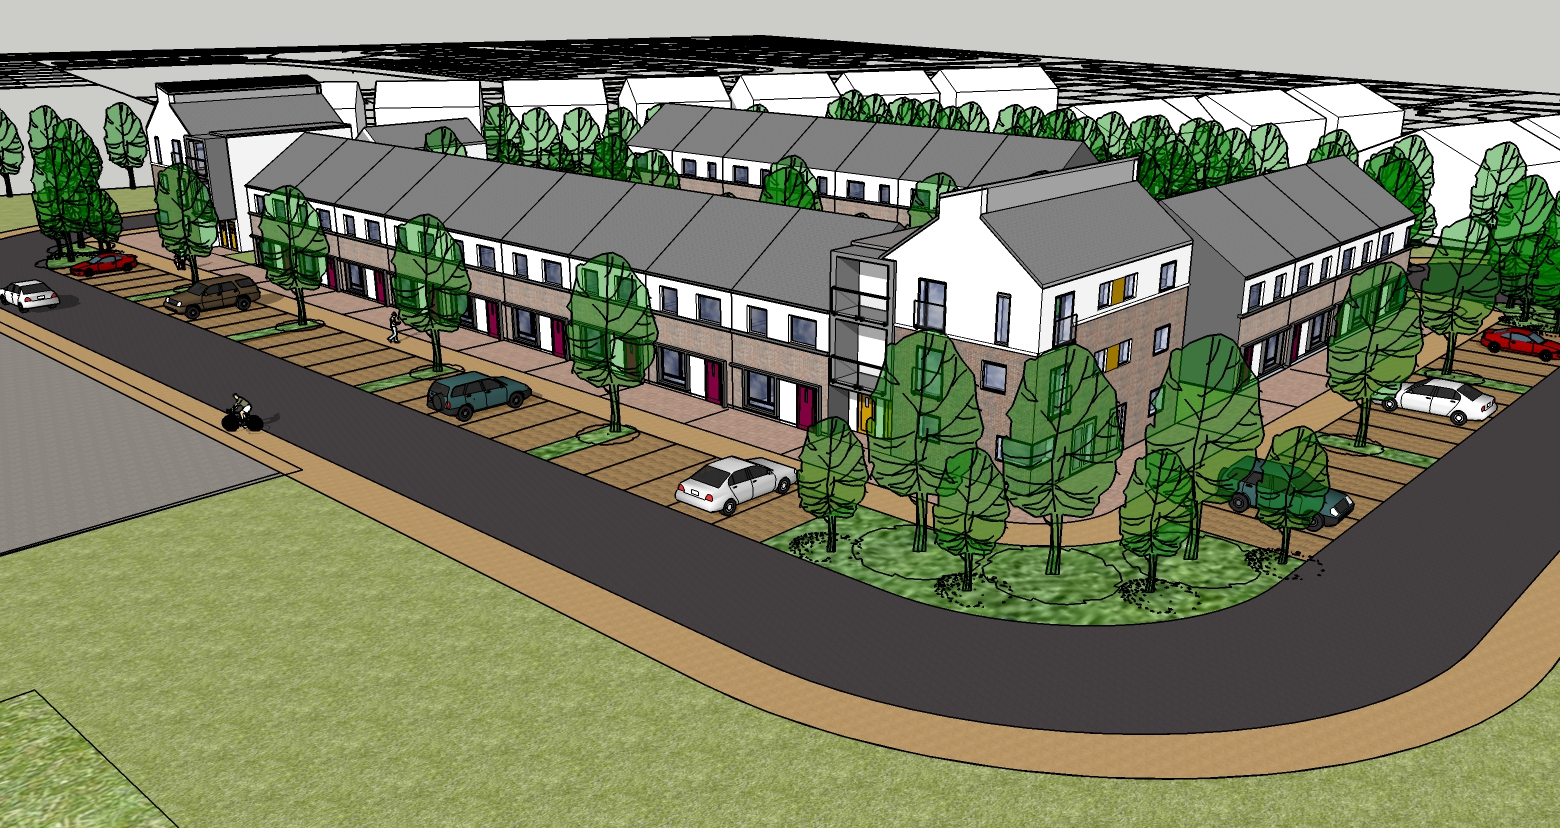 Proposed Social Housing Development comprising of 27 units